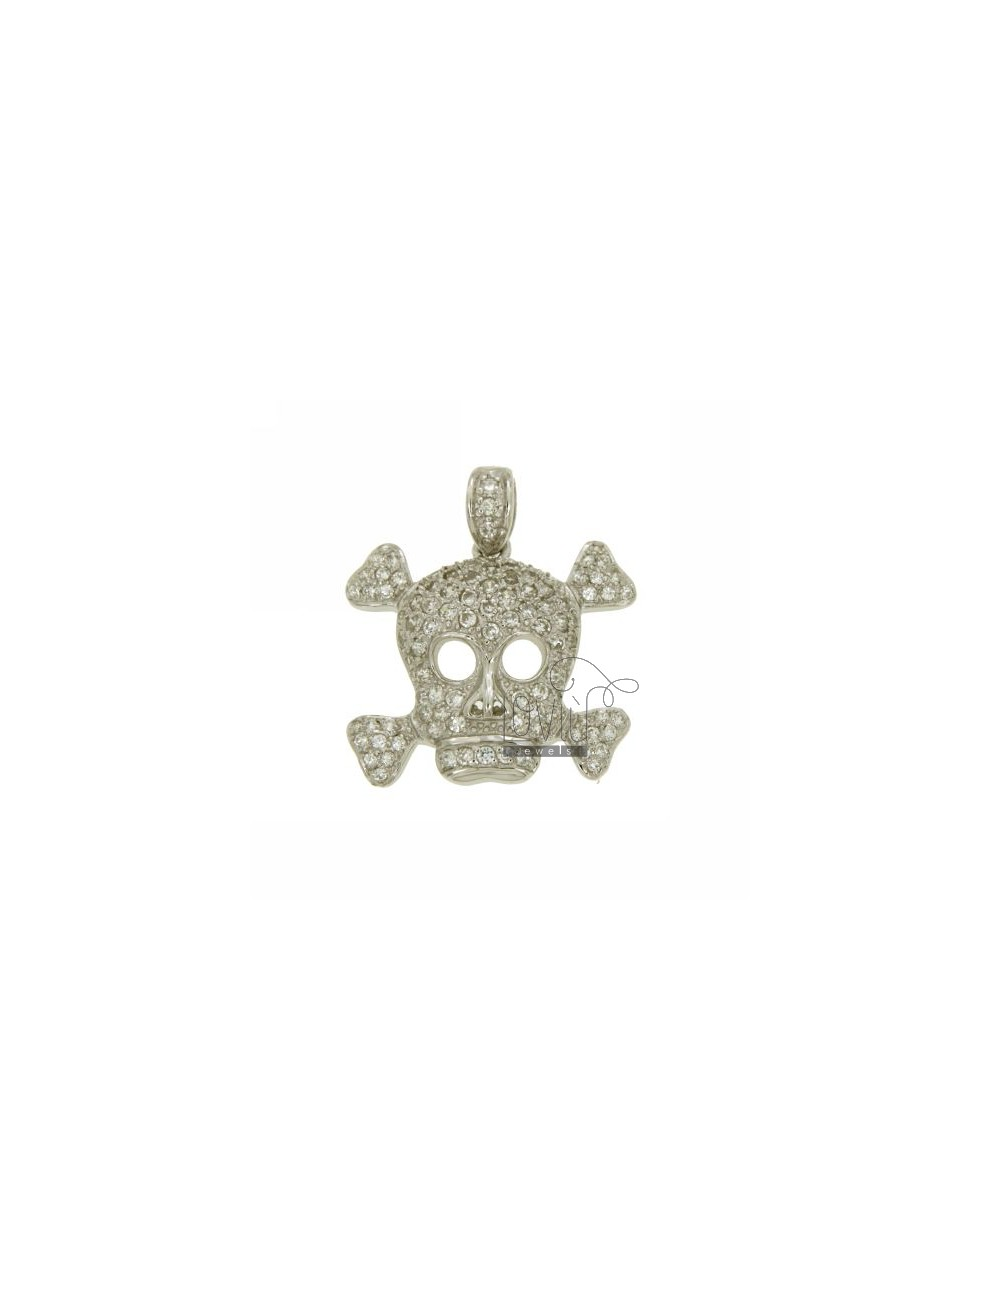 PENDANT SKULL PIRATES 26X28 MM IN AG TIT 925 ‰ AND ZIRCONIA